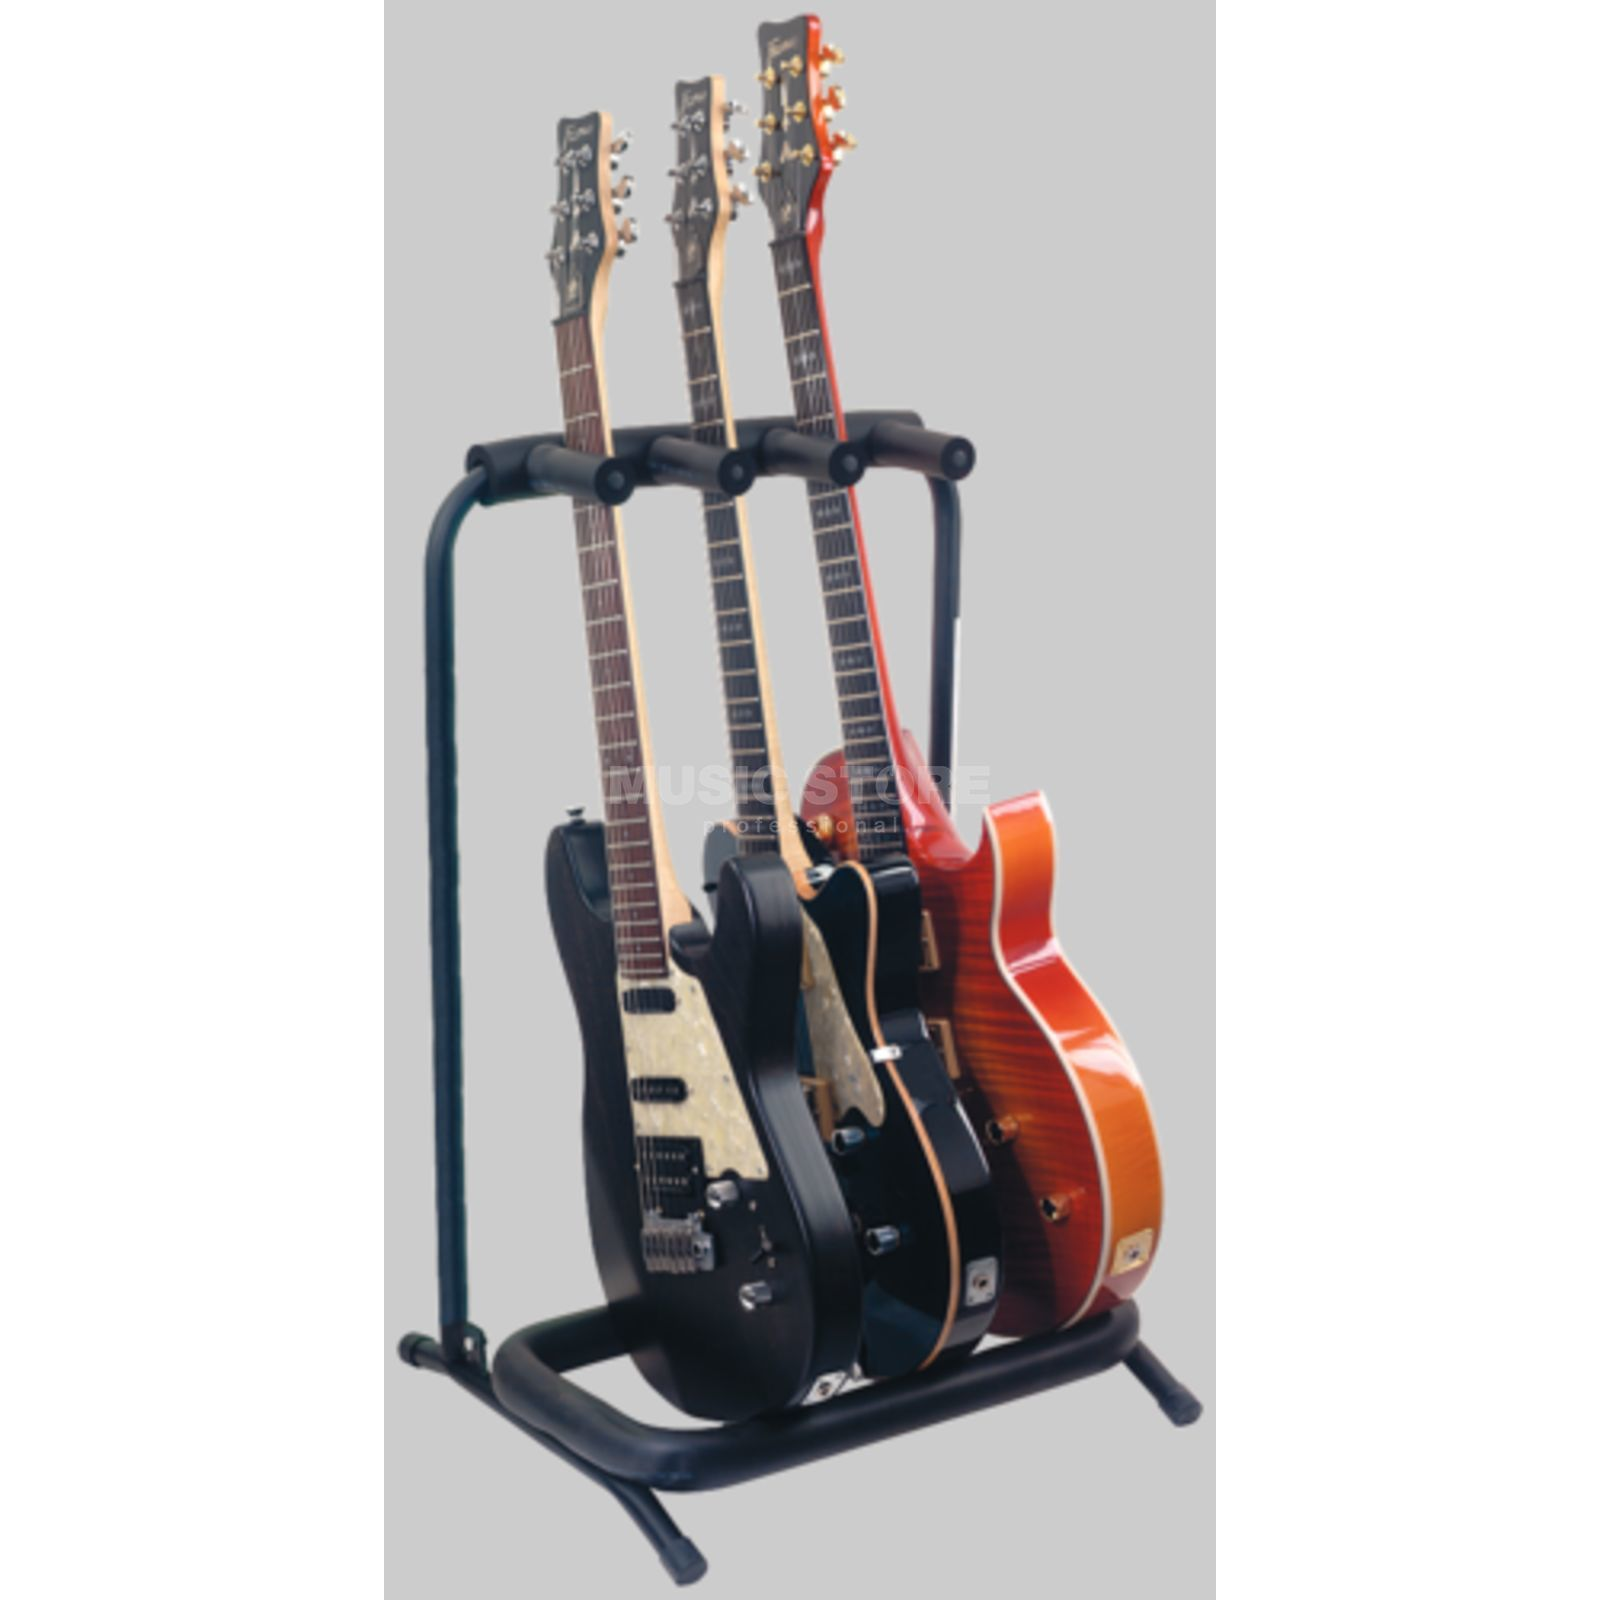 Rockstand 3-Way Multiple Guitar Stand RS 20860 B/2 Produktbillede